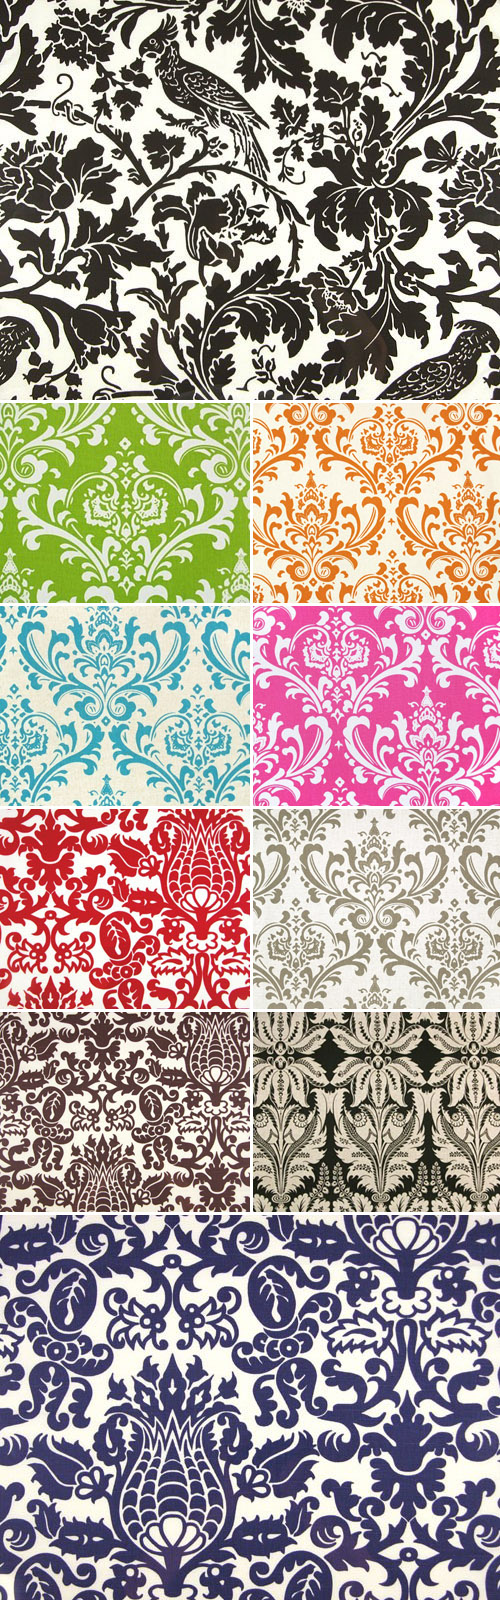 colorful damask wedding table runners from Bateson's Boutique